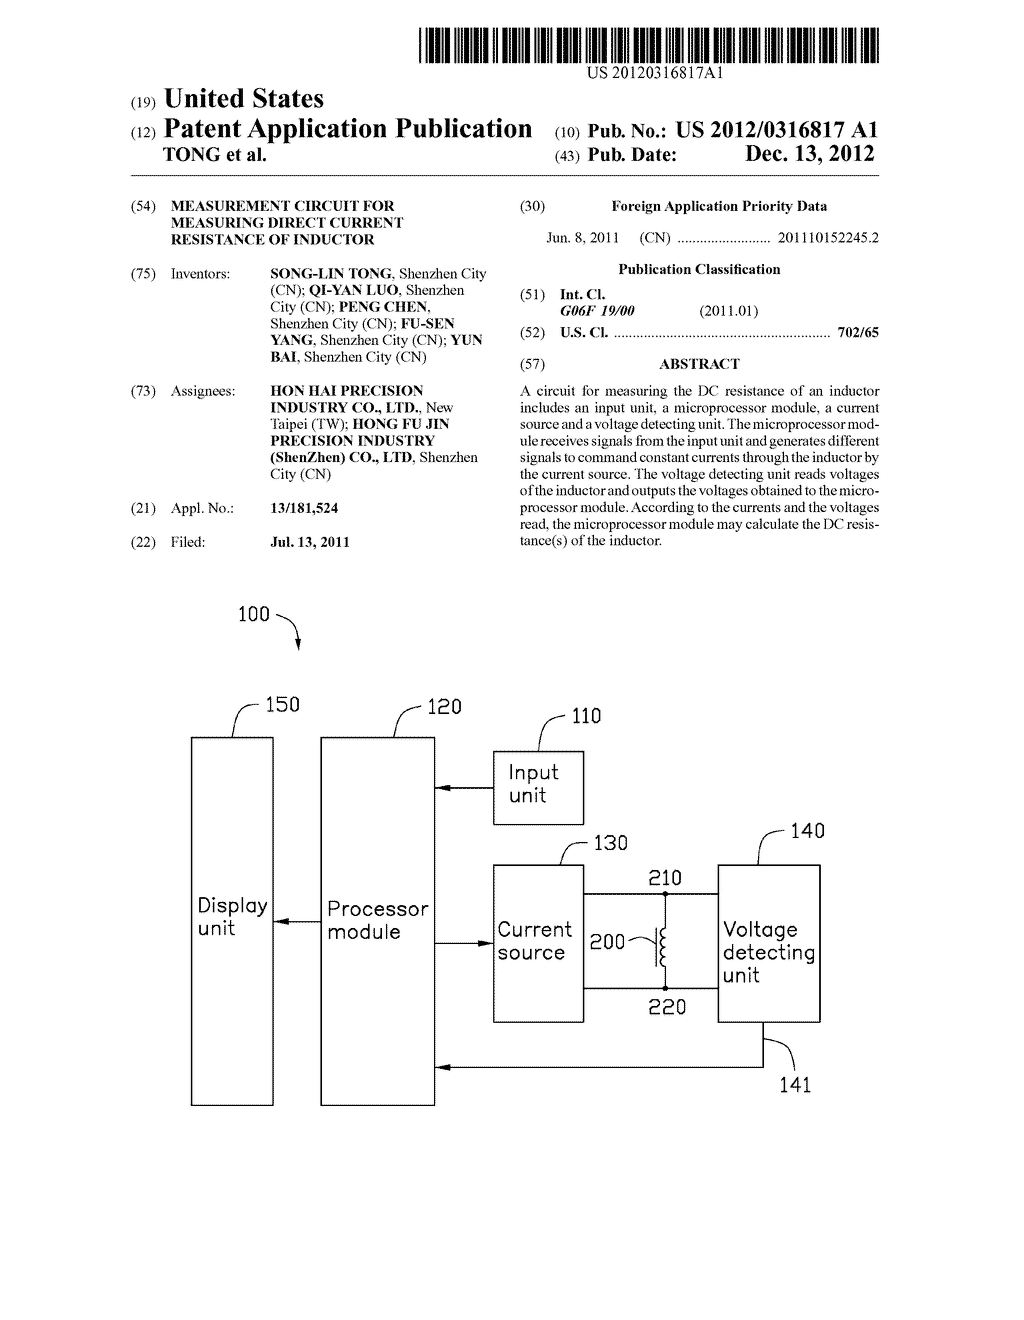 Measurement Circuit For Measuring Direct Current Resistance Of Diagram Inductor Schematic And Image 01